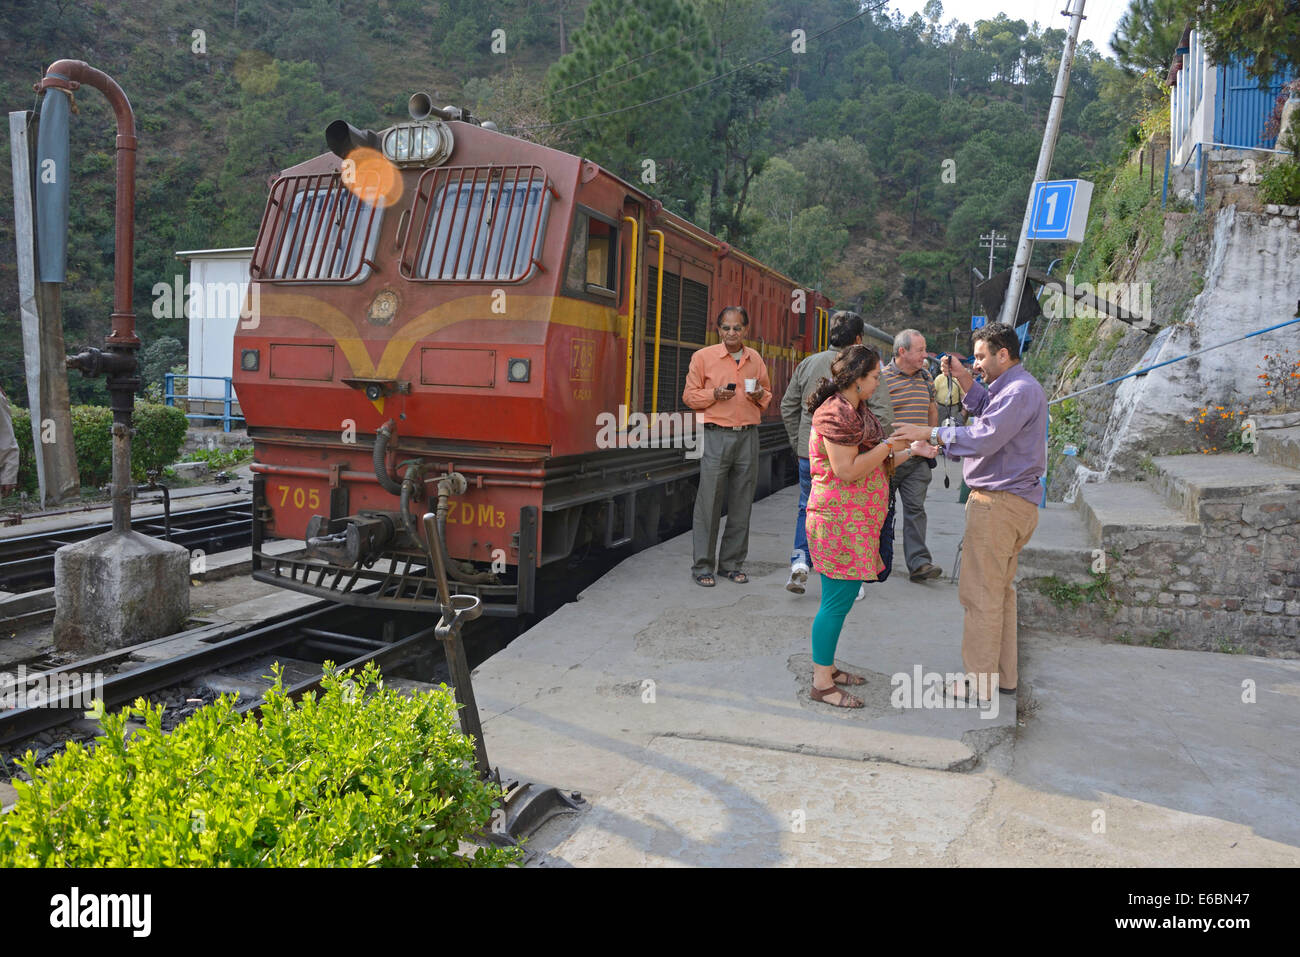 The Himalayan Queen train at Barog station on the Kalka-Shimla 96 km long railway track in Himachal Pradesh, India. - Stock Image